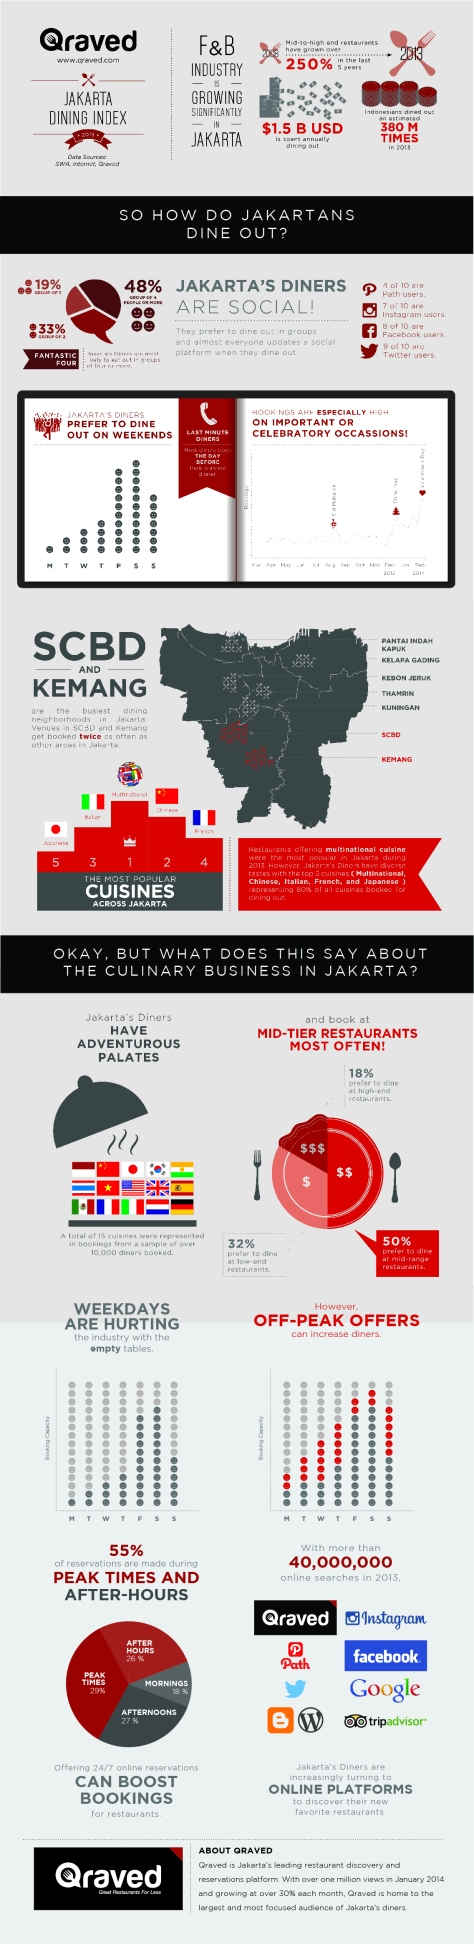 Qraved Jakarta Dining Index 2013